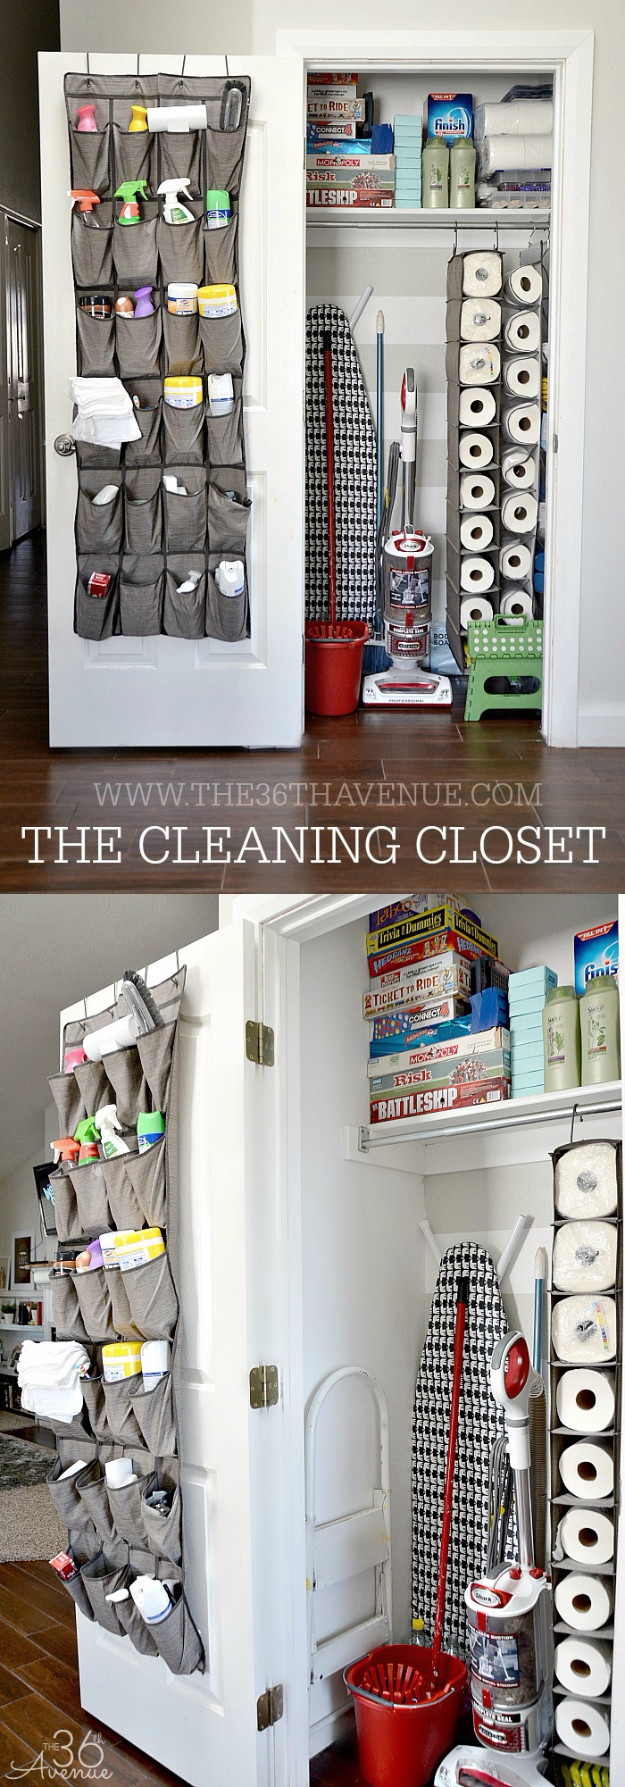 Best ideas about DIY Organize Closet . Save or Pin 31 Best DIY Organizing Ideas for the New Year Now.